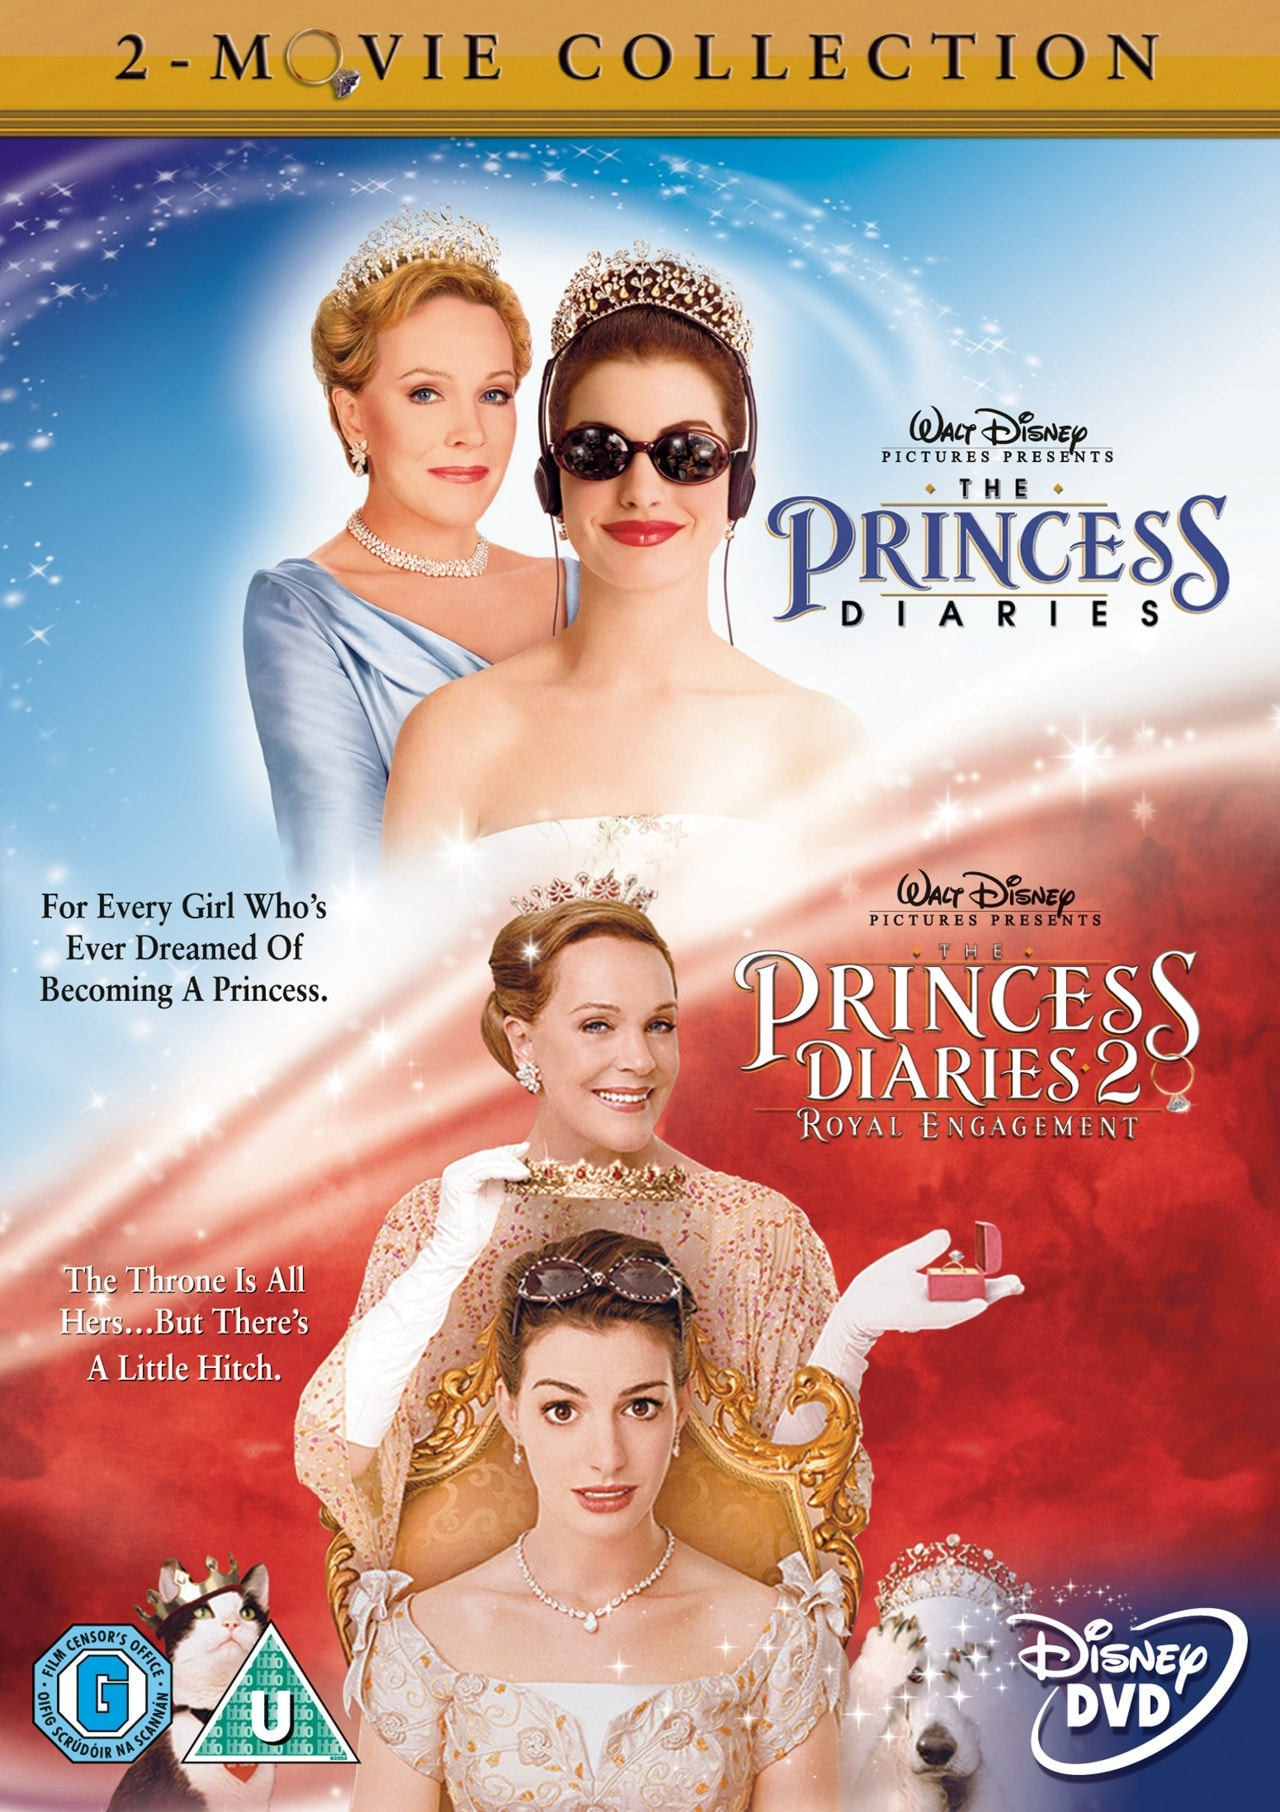 The Princess Diaries/Princess Diaries 2 - Royal Engagement - 1